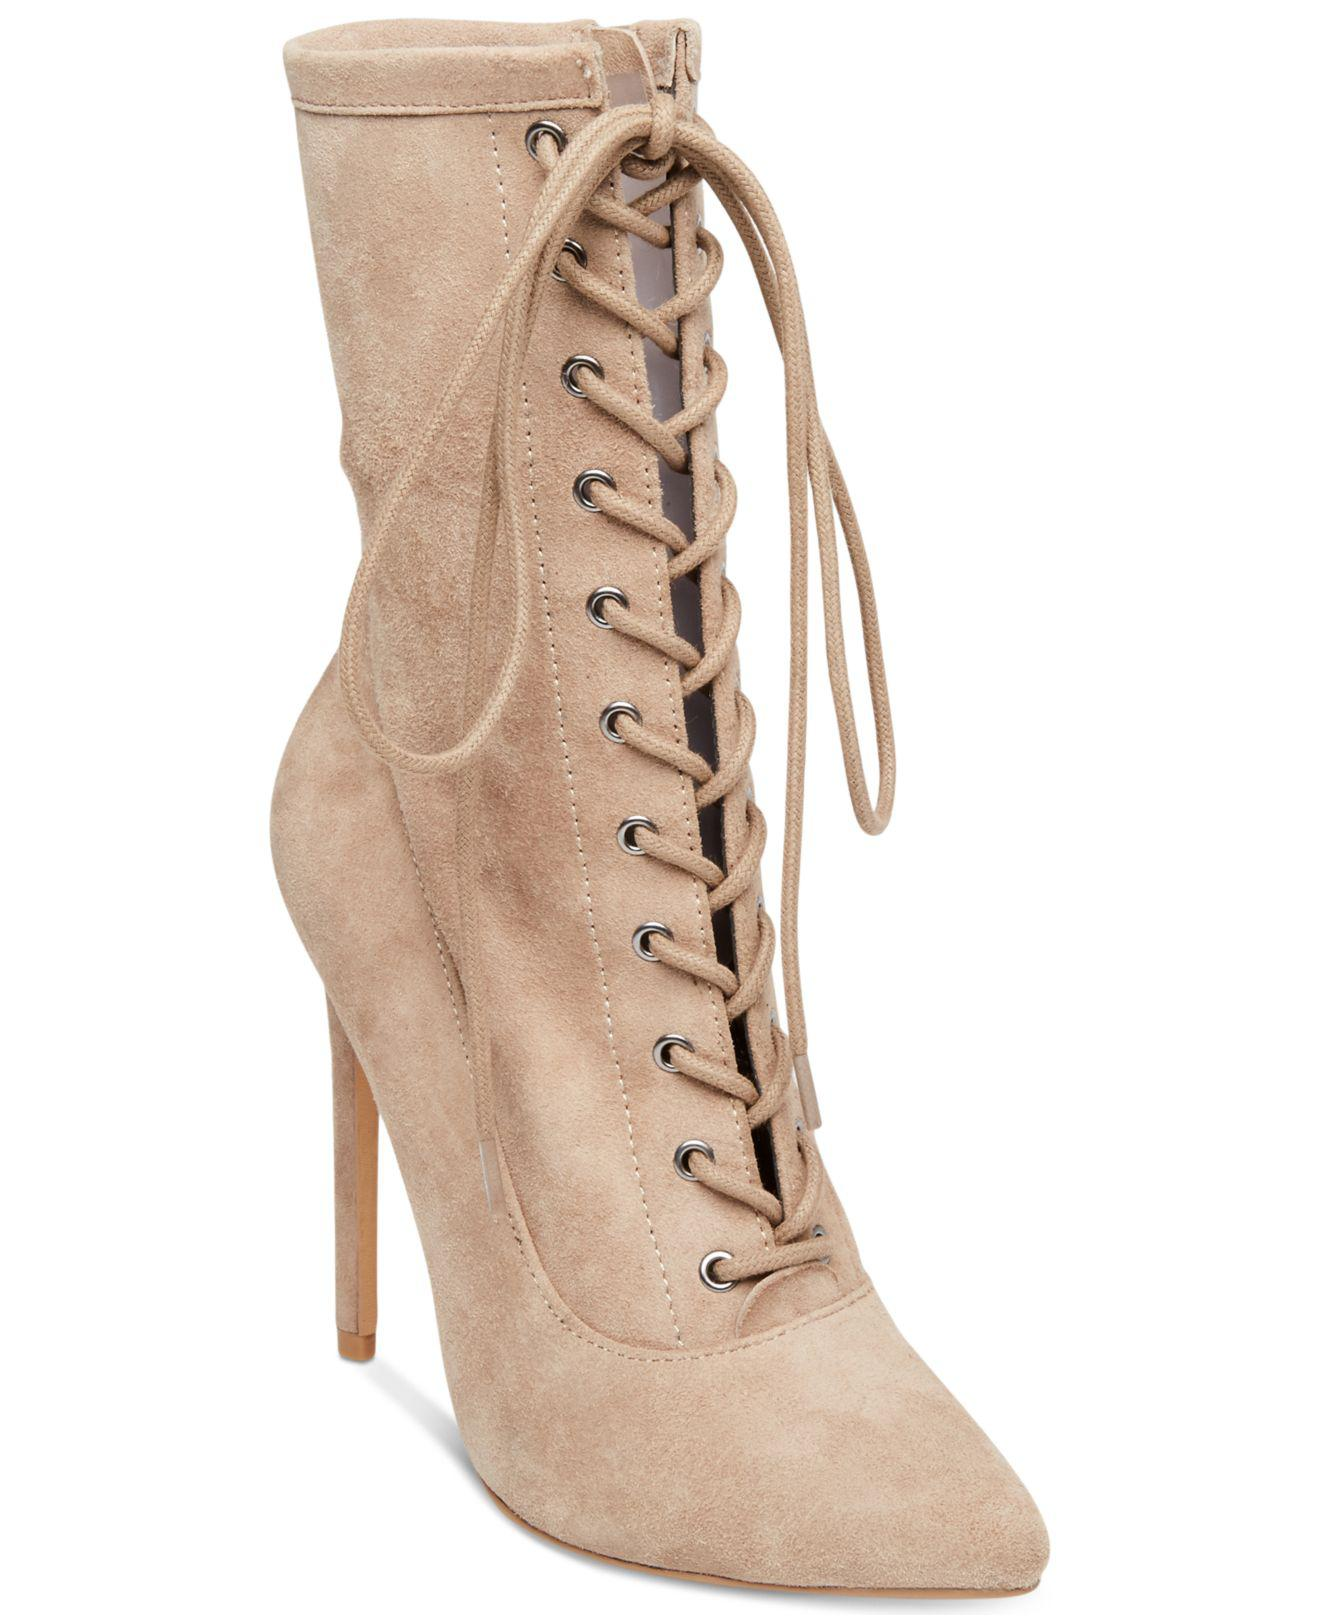 db7376fe04b Lyst - Steve Madden Women s Satisfied Lace-up Stiletto Booties in ...